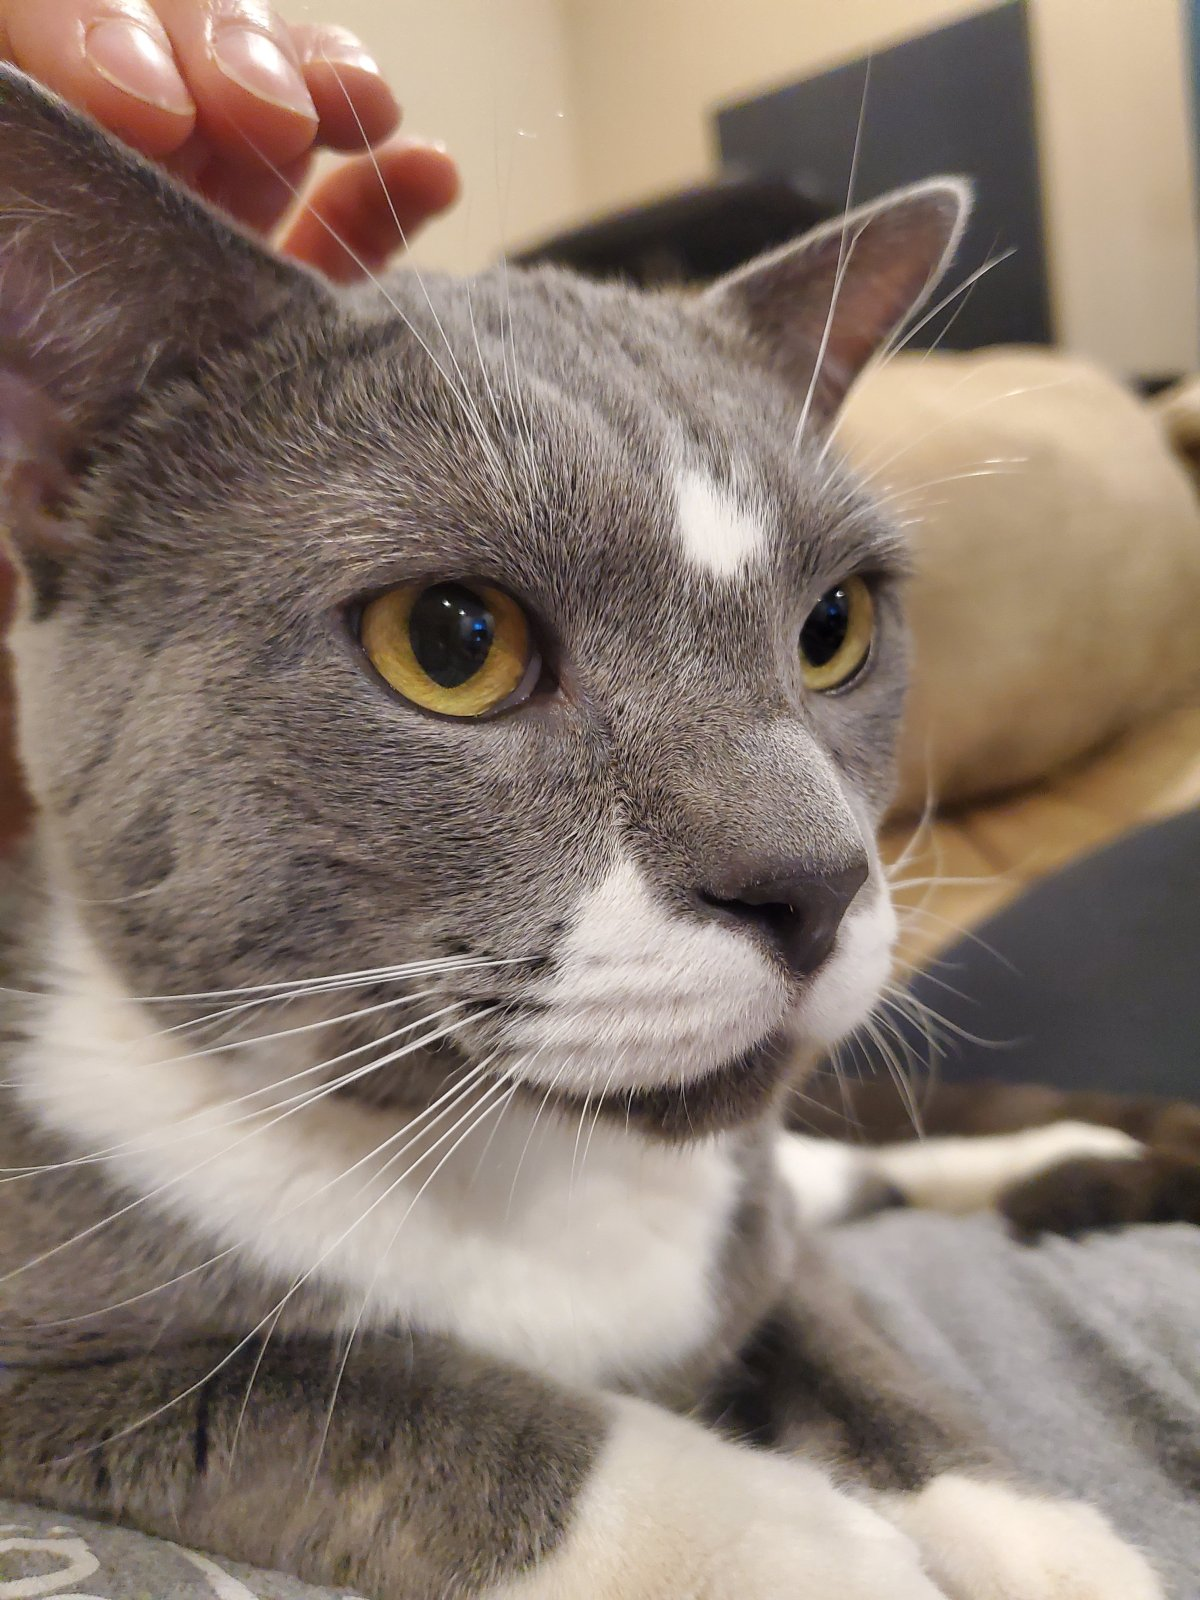 close-up of grey and white cat